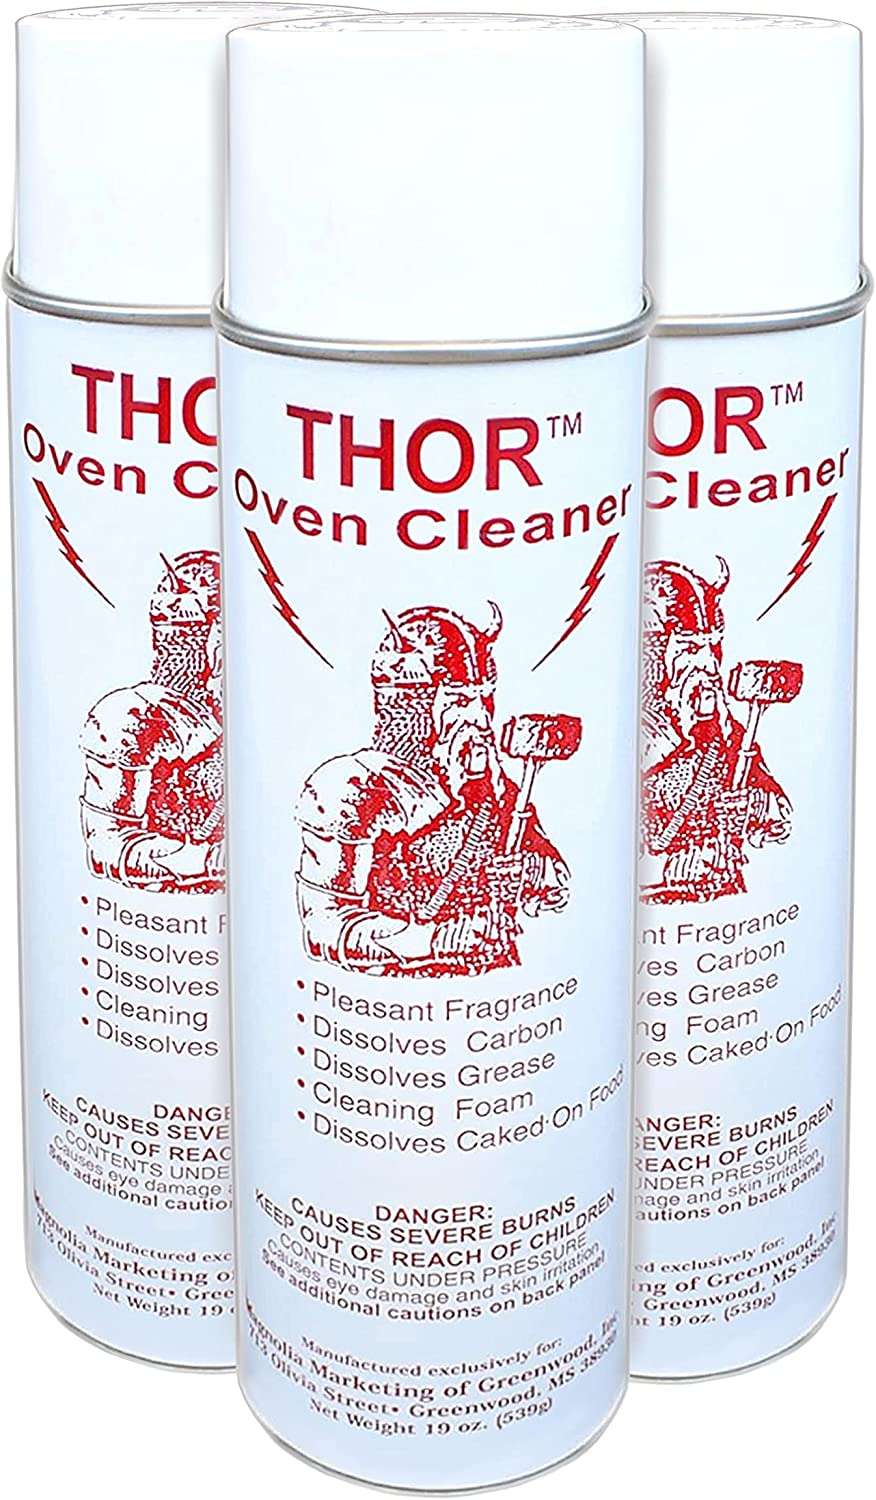 Quality inspection Thor Oven Cleaner 3 Oz. Cans - Ranking TOP19 19